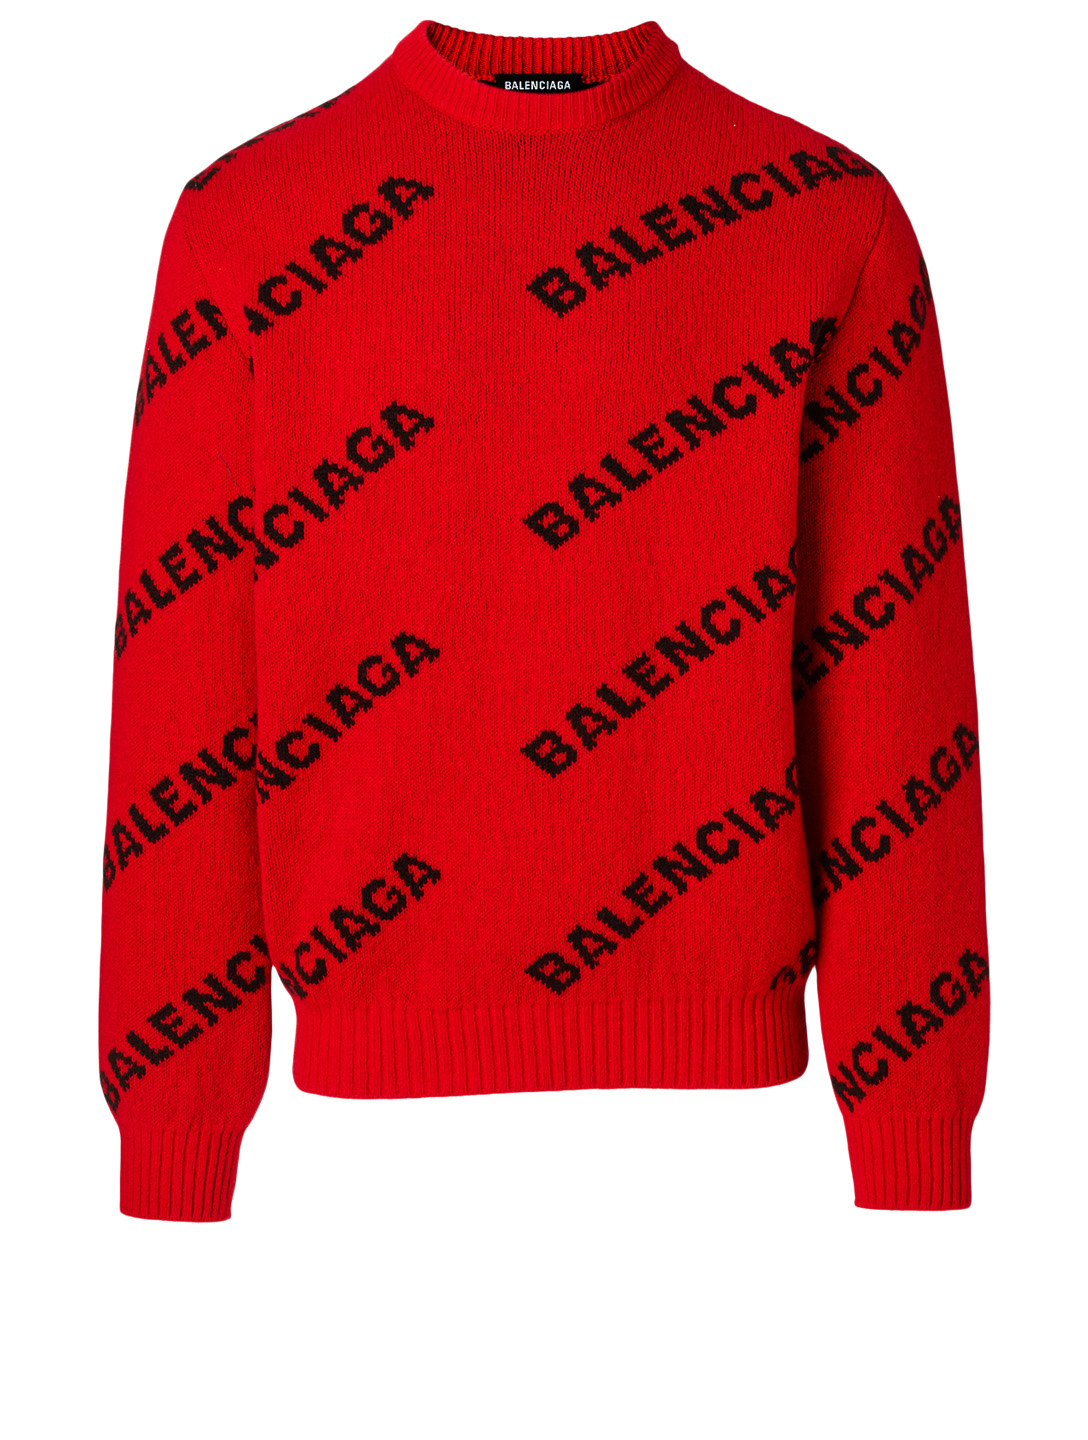 BALENCIAGA Wool Logo Sweater Men's Red